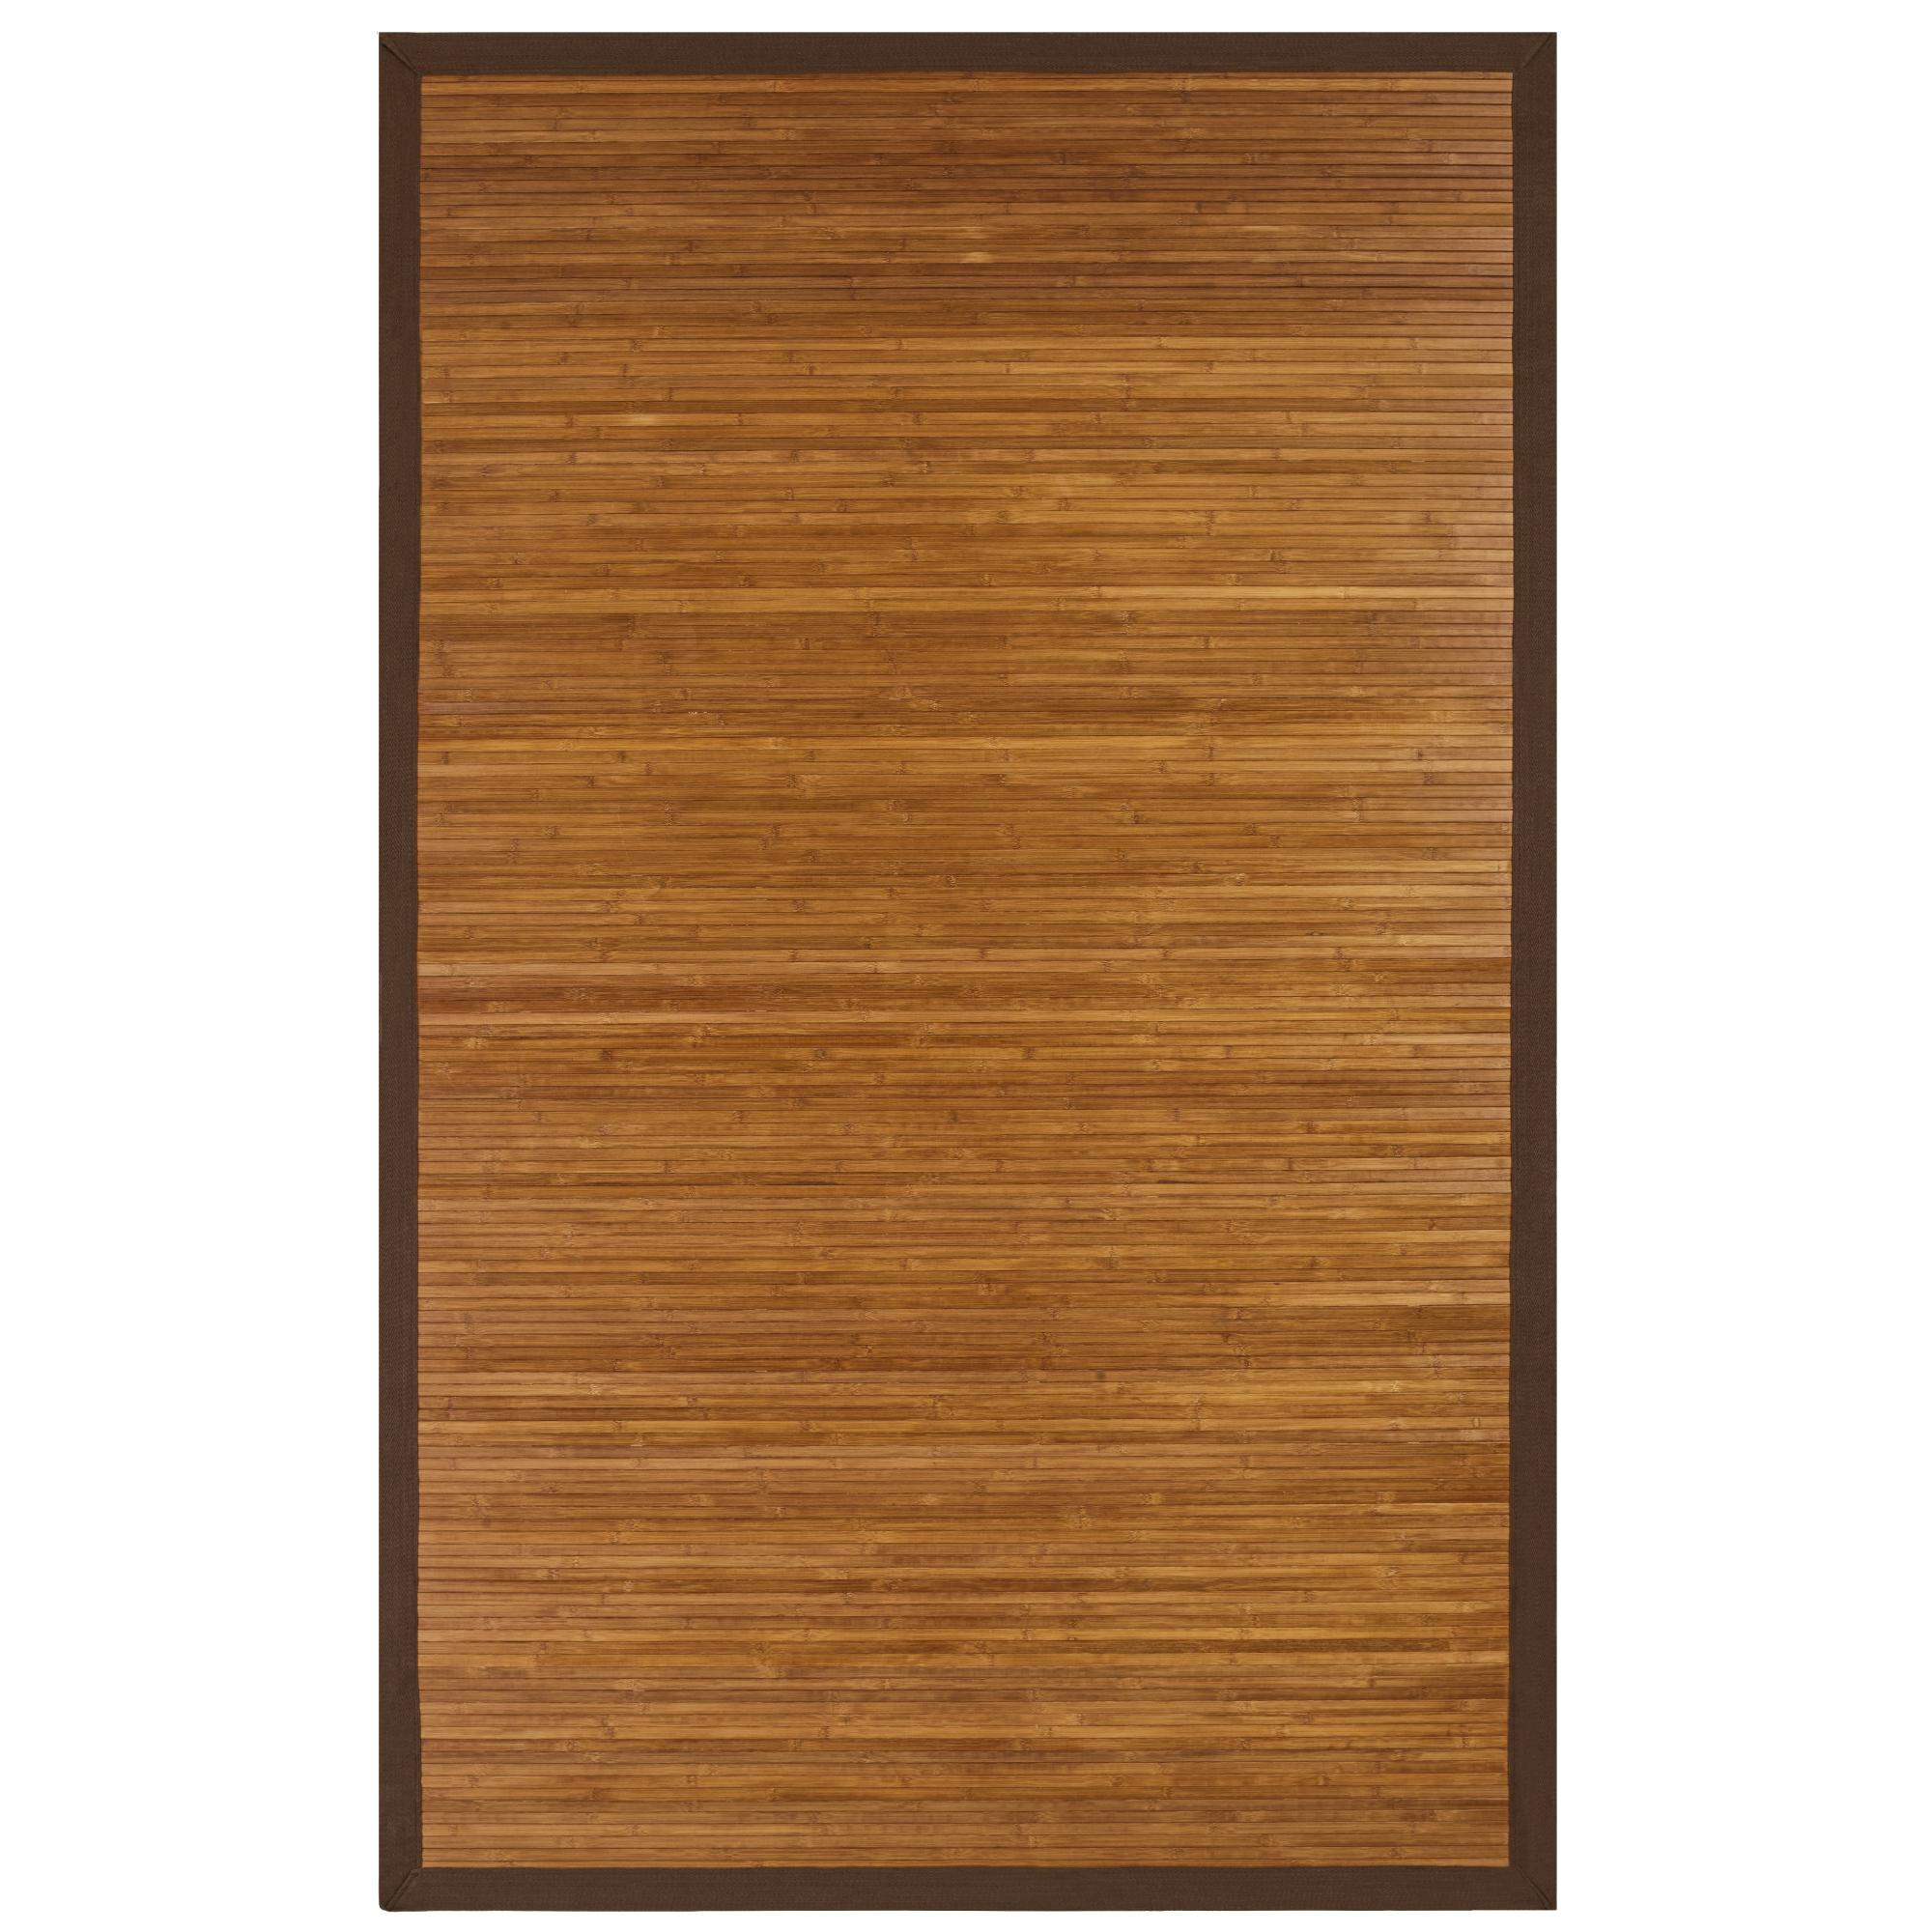 Amazon Contemporary Bamboo Rug Natural 5 W x 8 L Kitchen